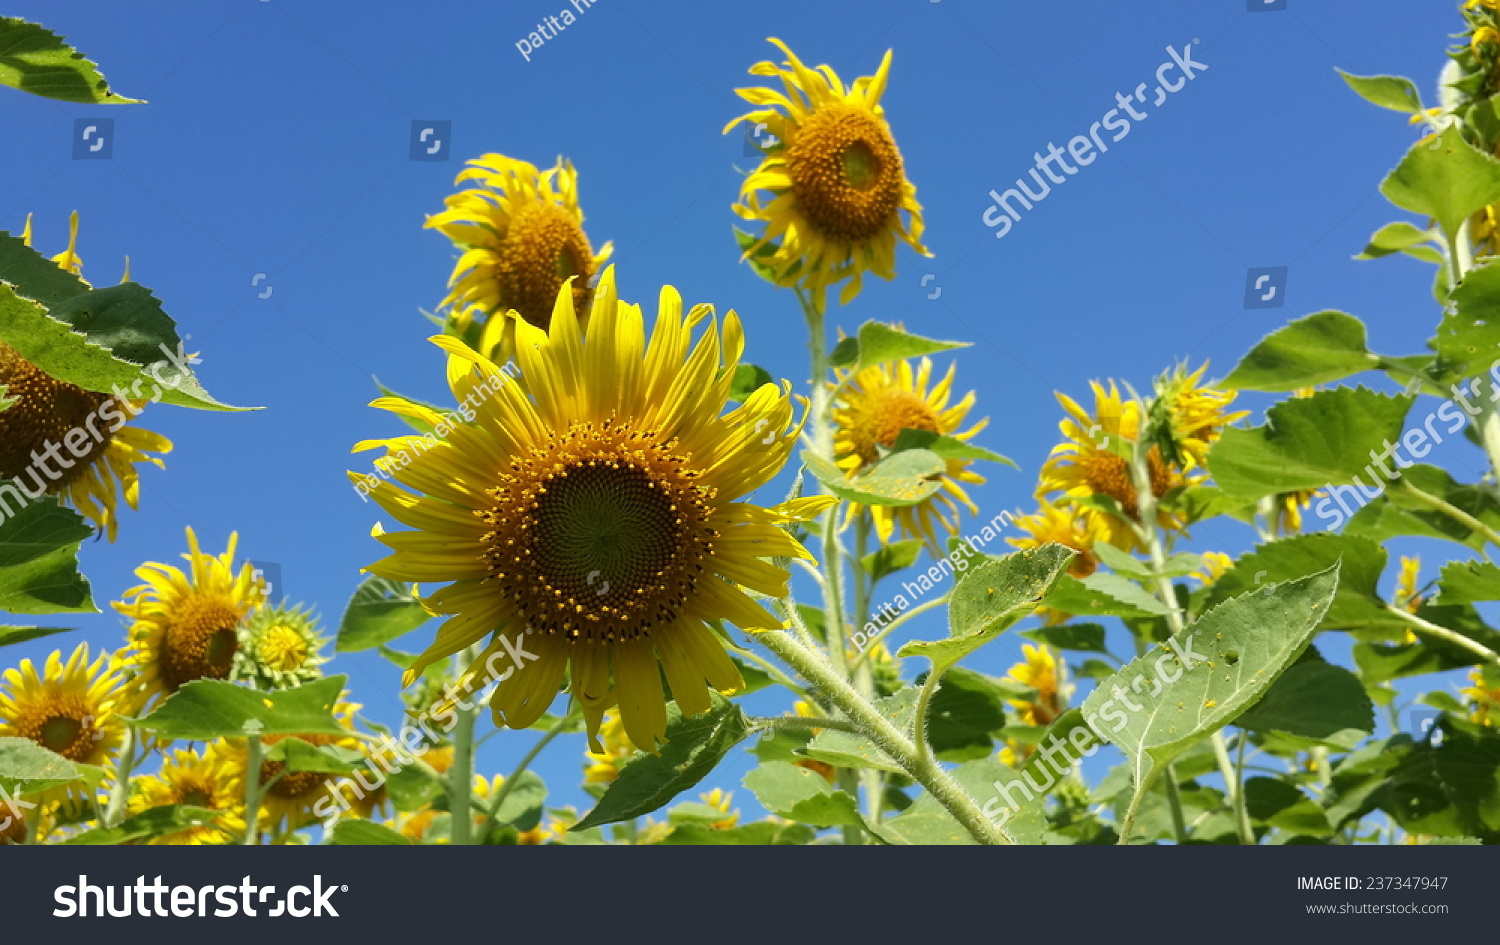 sunflowers flowers yellow background wallpaper nature stock photo